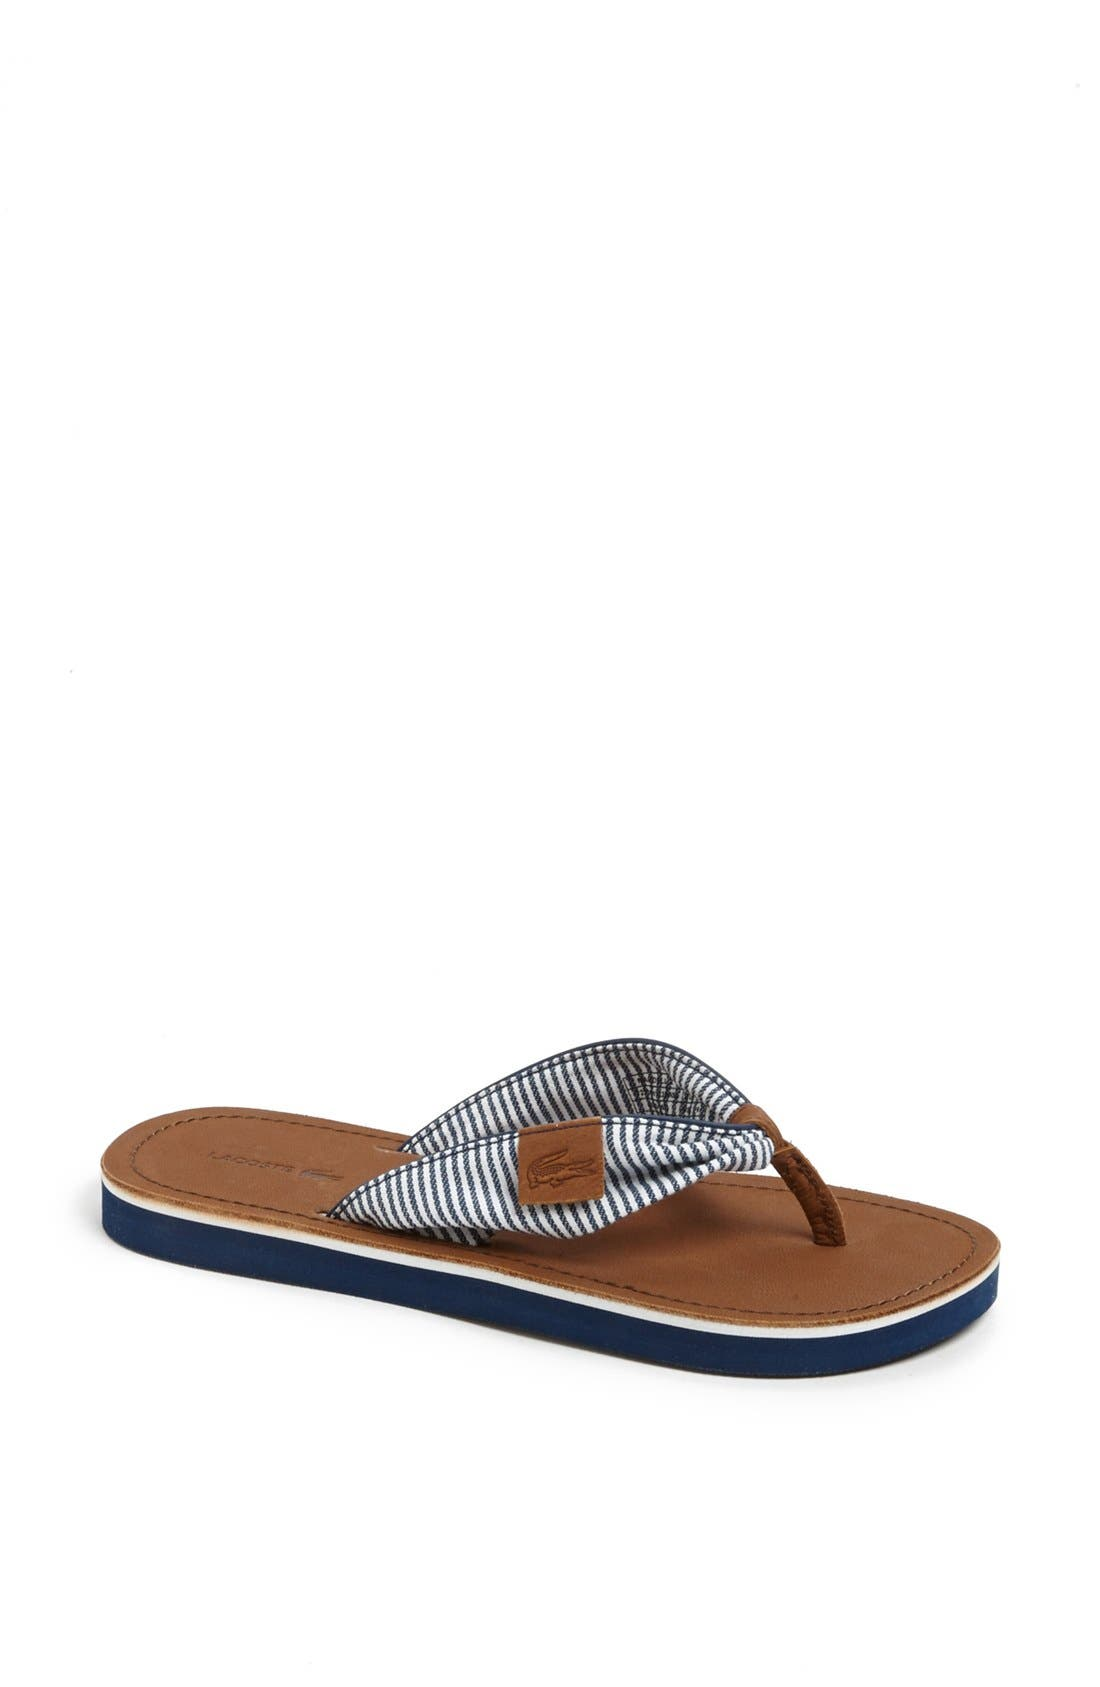 Alternate Image 1 Selected - Lacoste 'Maridell' Sandal